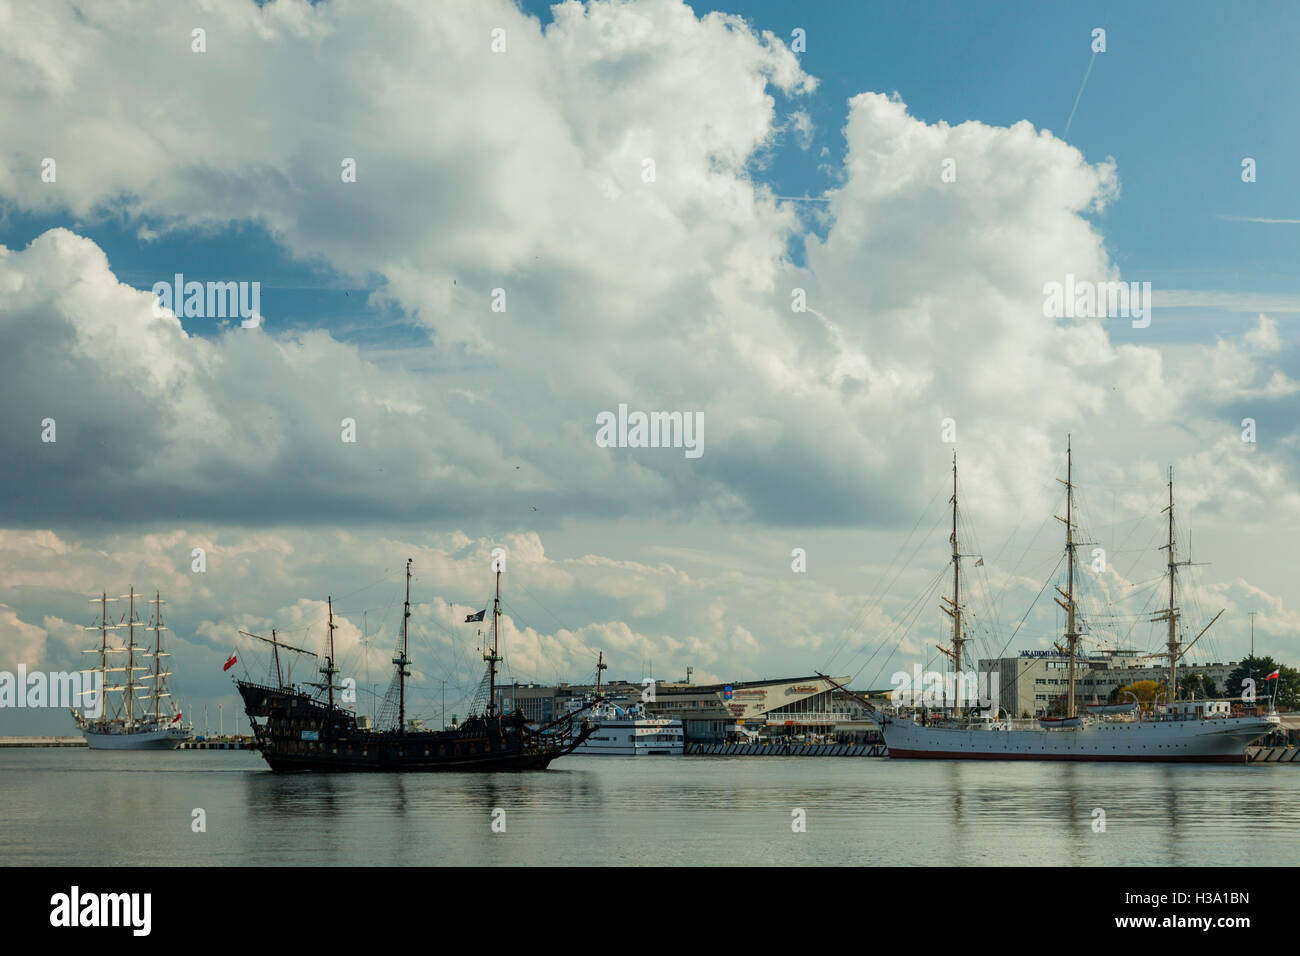 Sailing ships in Gdynia seaport, Poland. - Stock Image